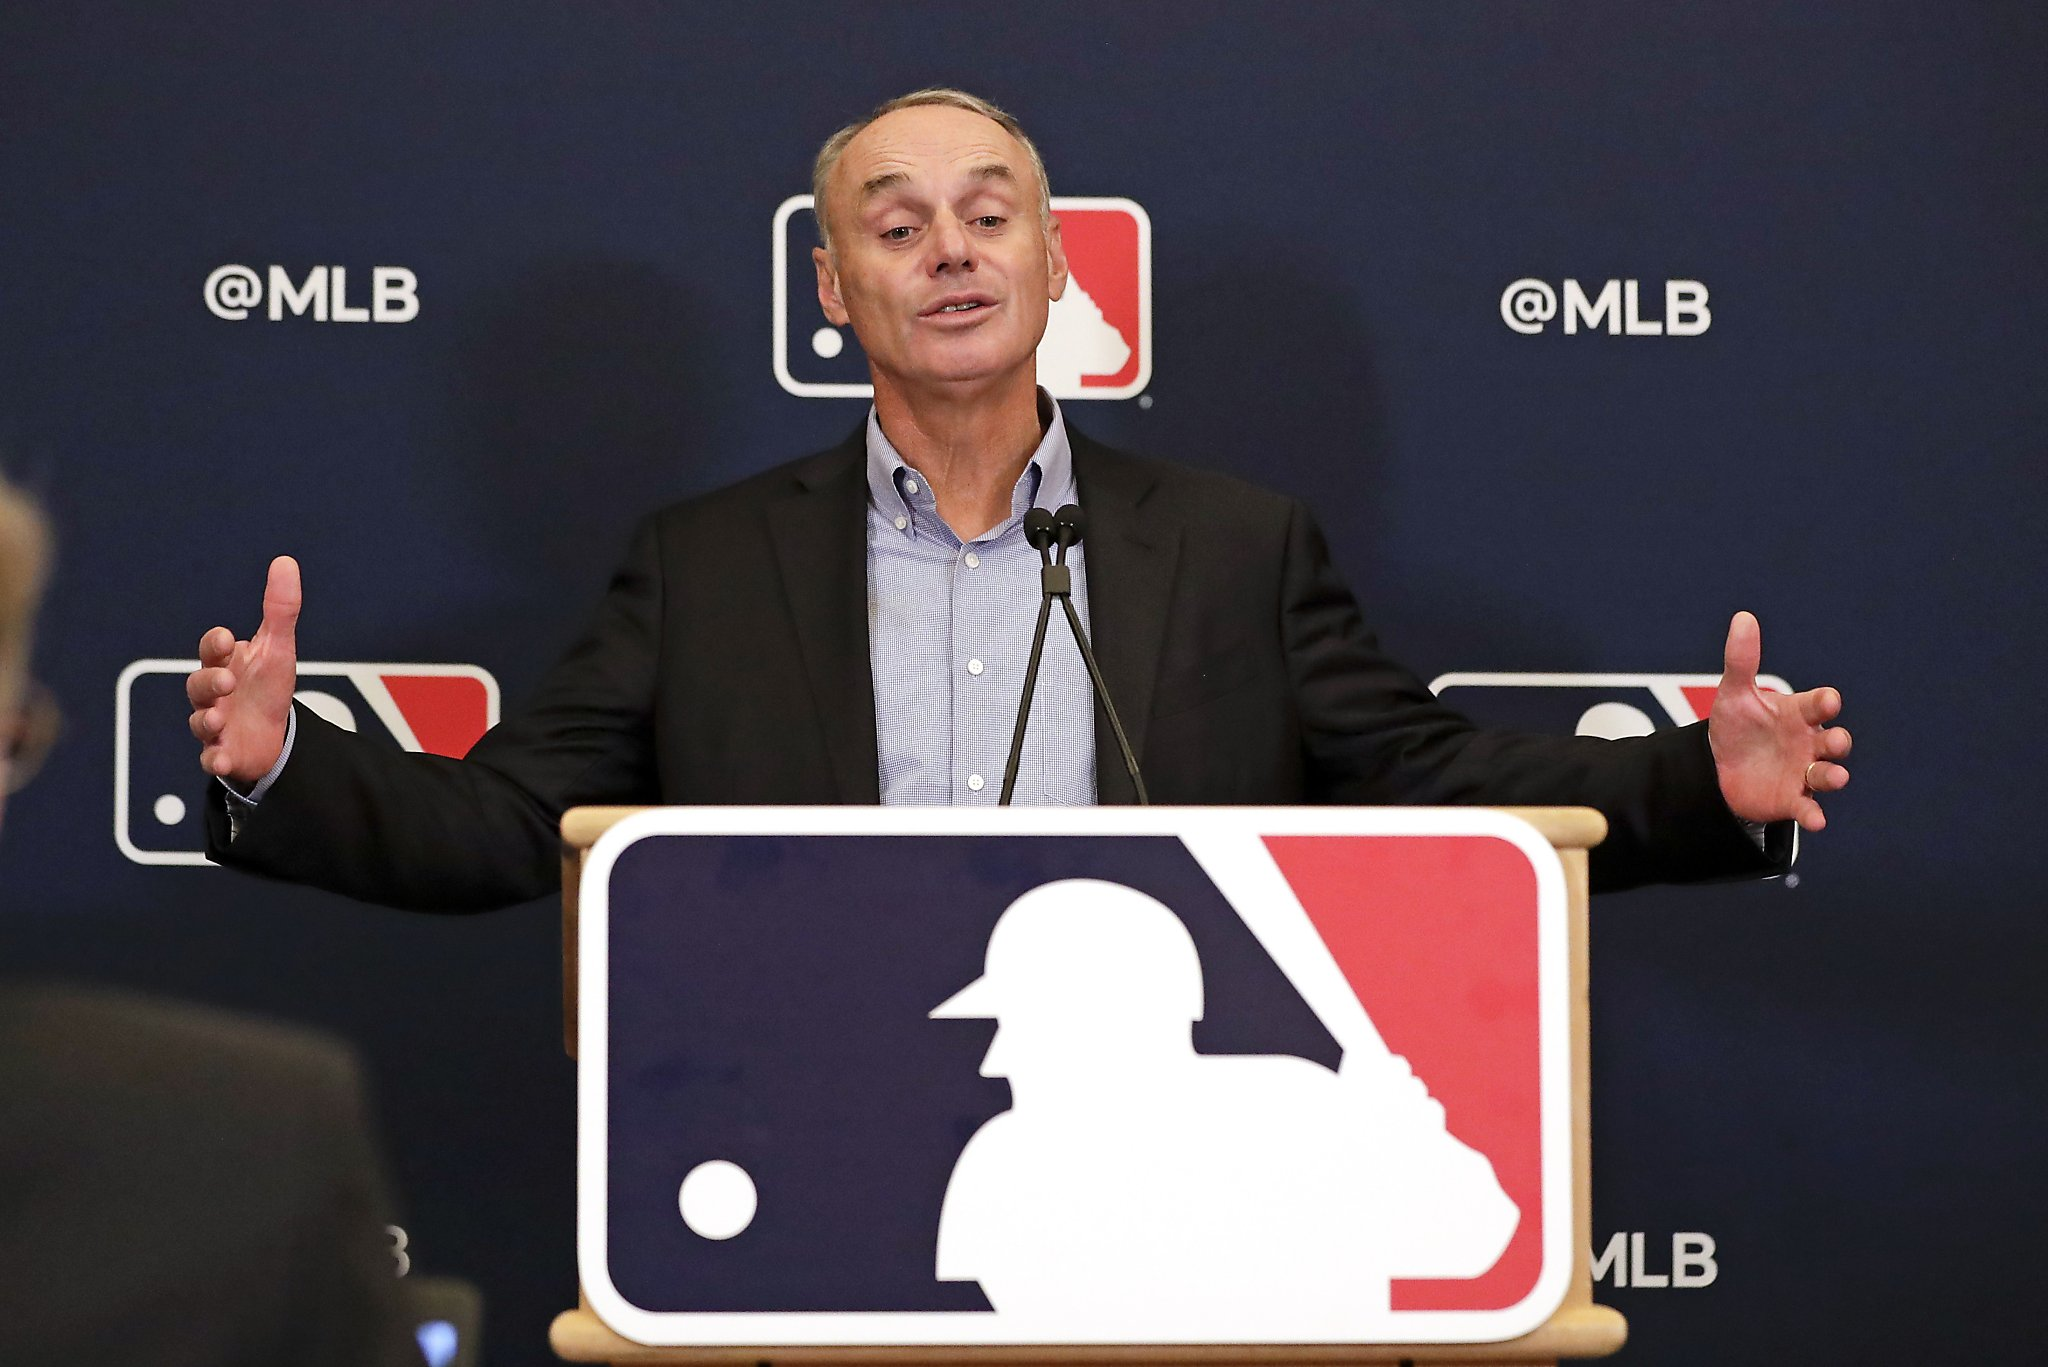 Rob Manfred pledges MLB will protect A's Mike Fiers, praises Fiers' actions